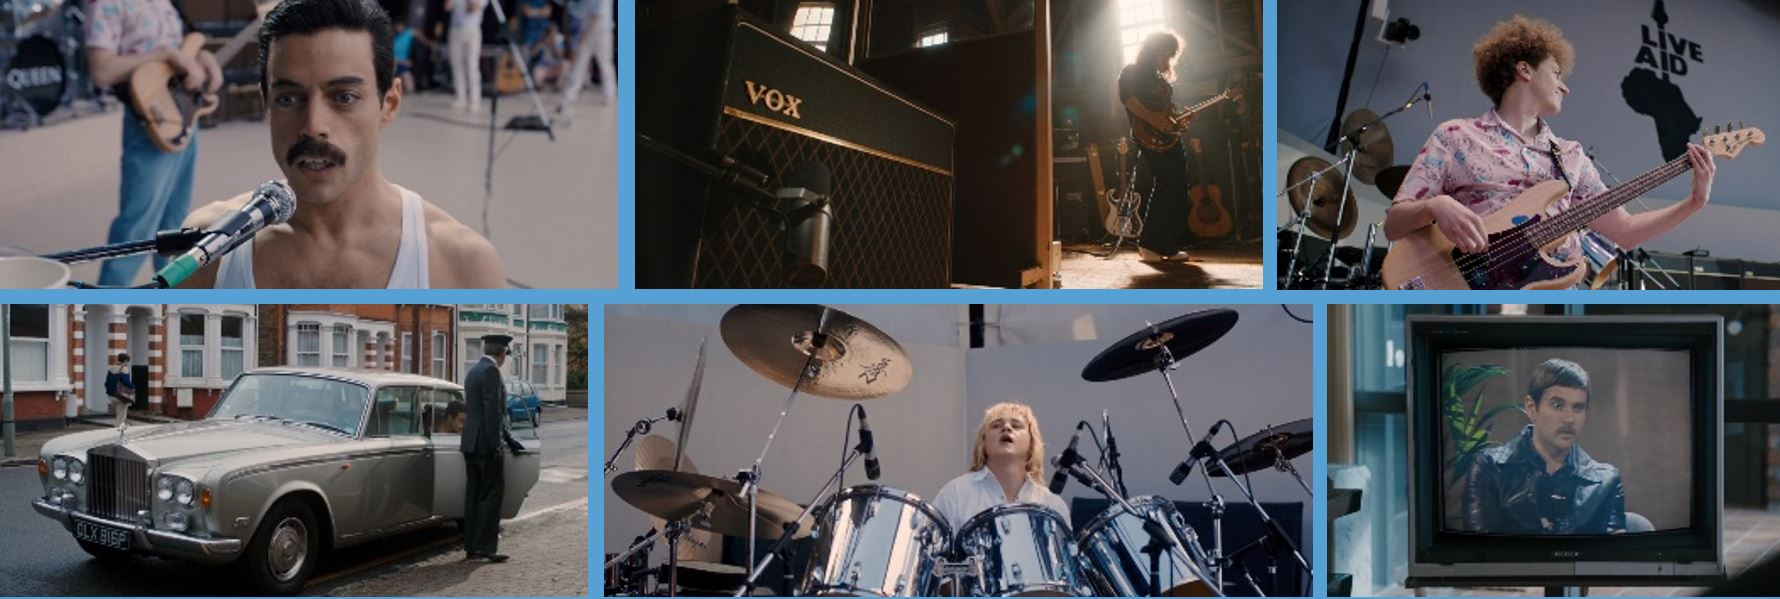 2018 product placement concave brand Tracking most brand filled movies branded entertainment marketing bohemian rhapsody Vox Zildjian Shure Sonyrolls royce rolls-royce